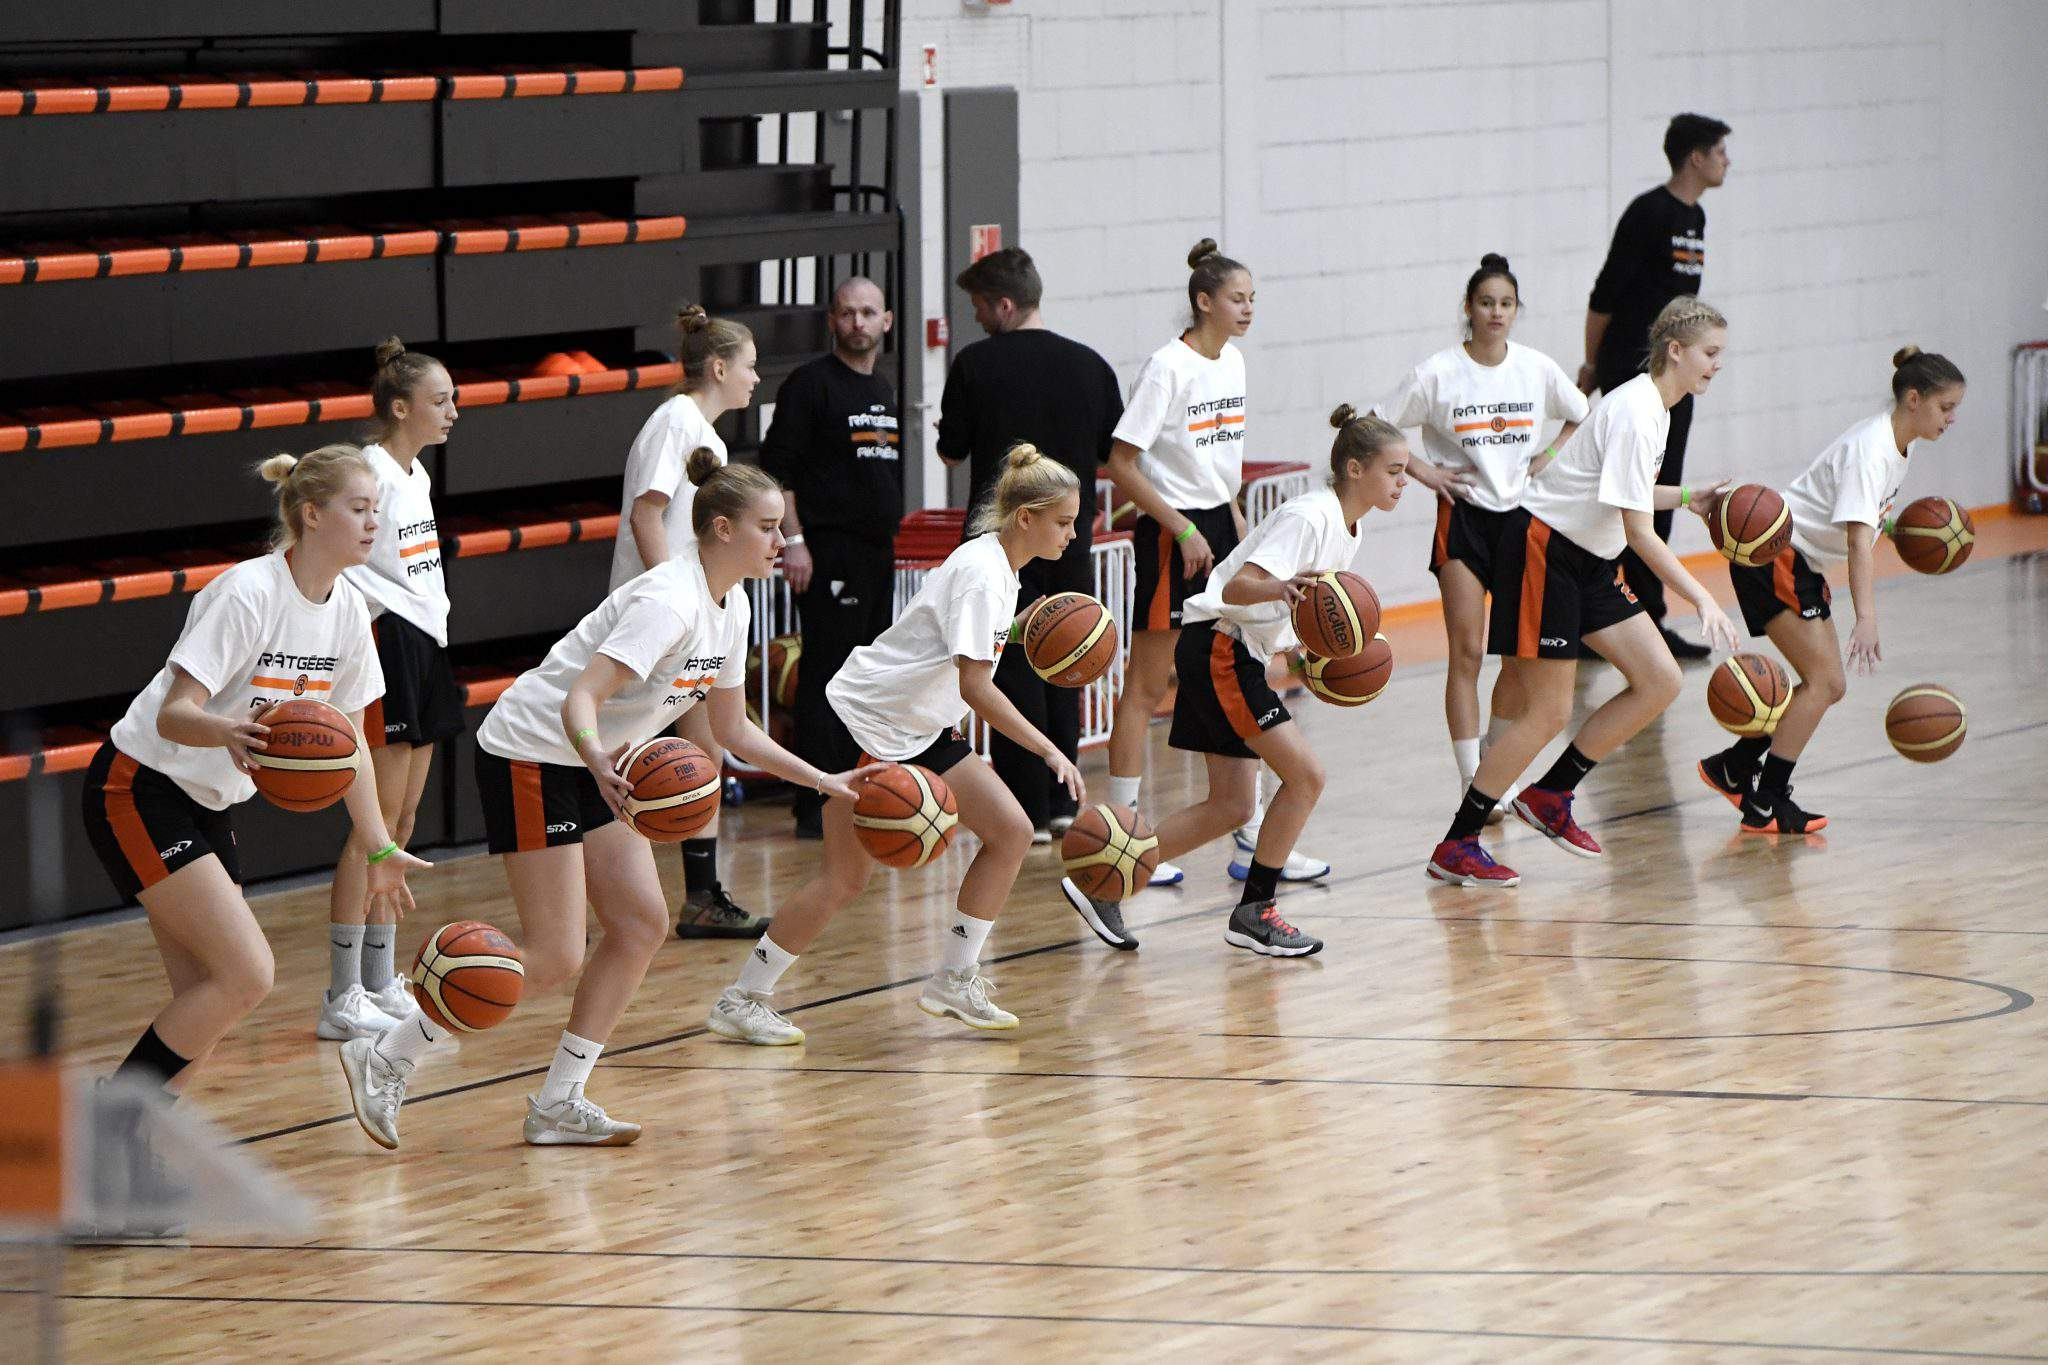 national basketball academy Pécs